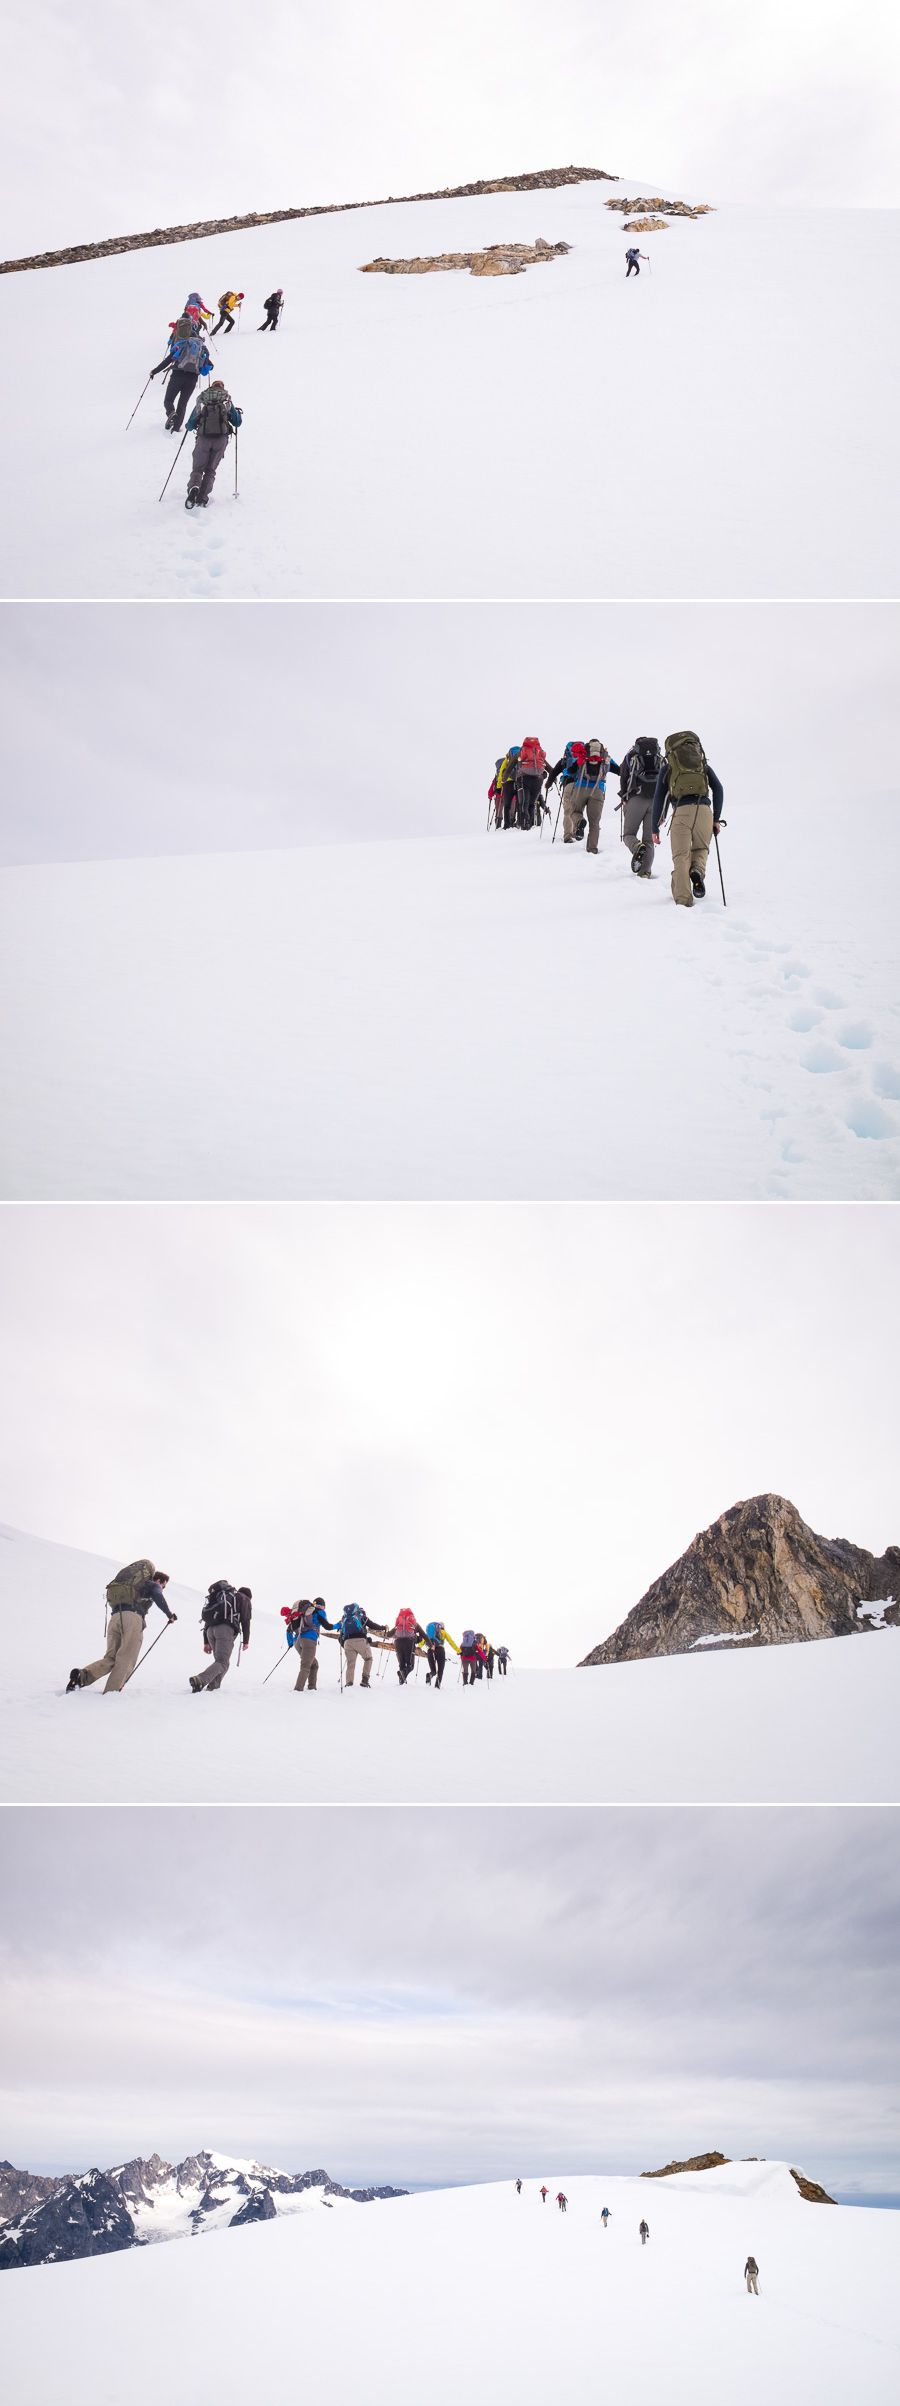 Several images showing the group trekking through the snowfields on the way to the viewpoint